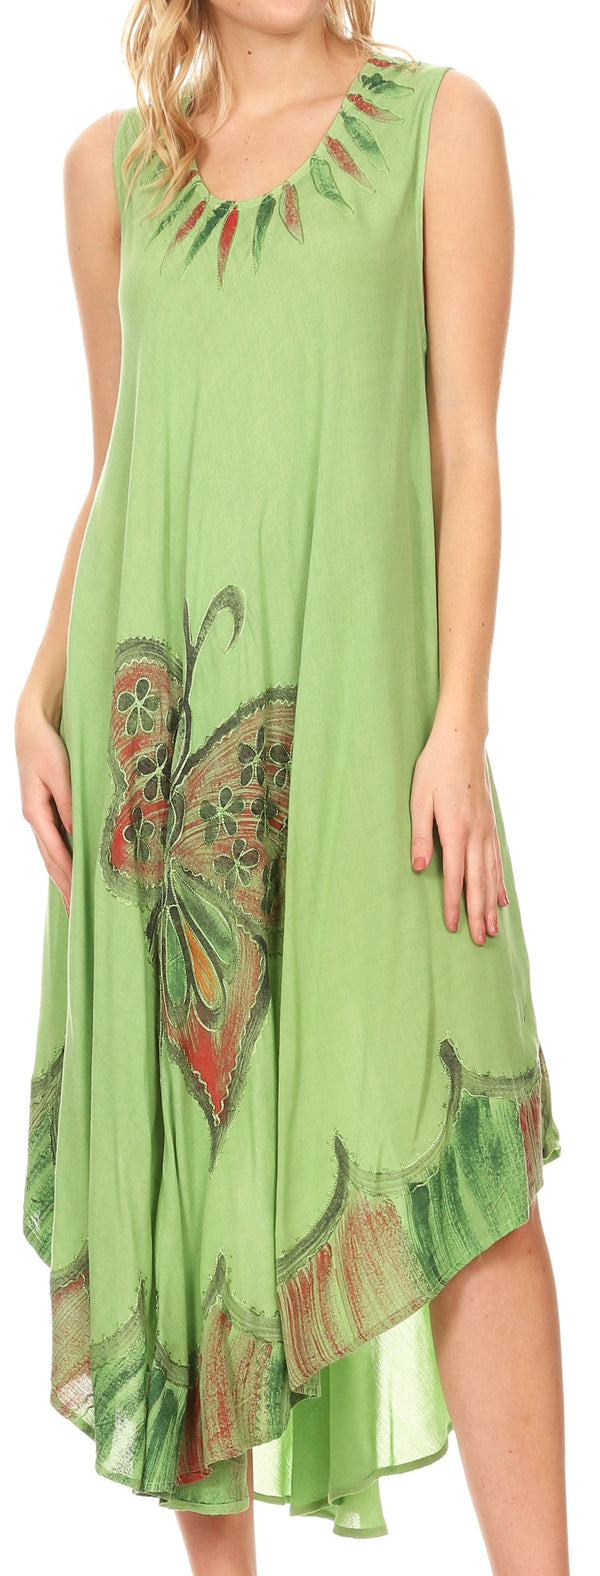 Sakkas Keola Women's Maxi Caftan Bathing Suit Cover Up Summer Dress Sleeveless#color_Green